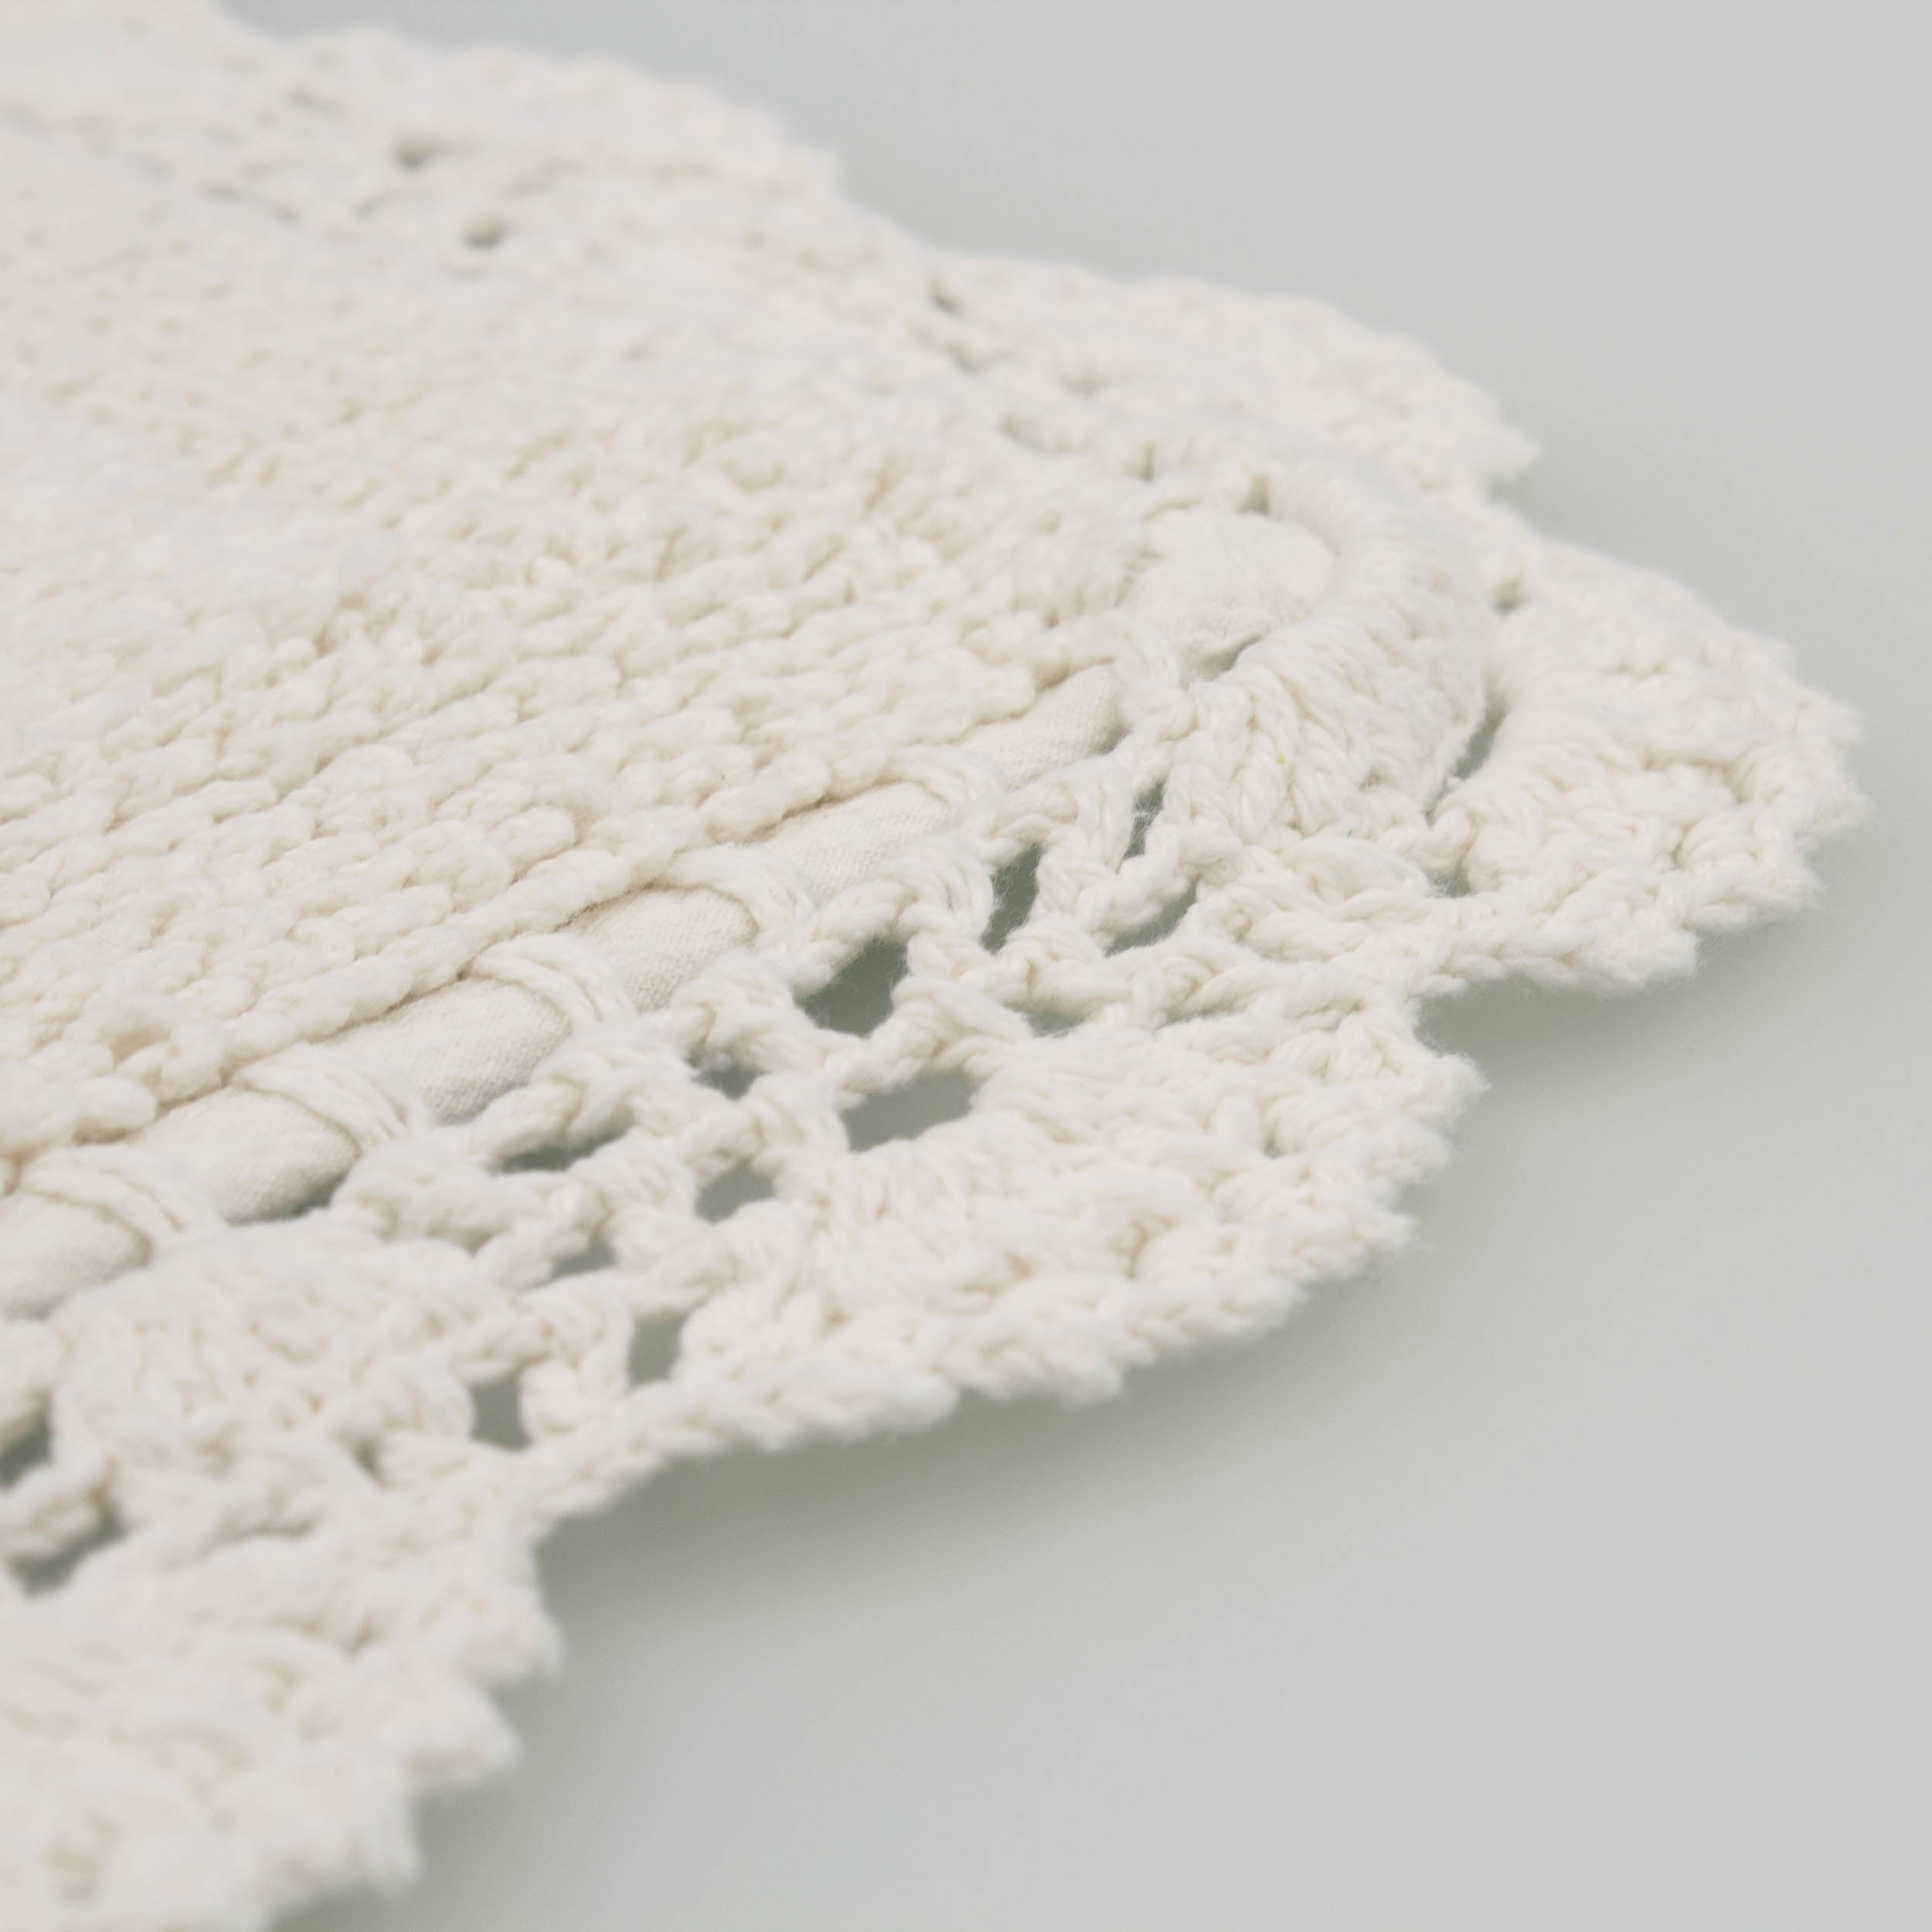 Laura Ashley Reversible Cotton Crochet 2 Piece Bath Rug Set Free Shipping On Orders Over 45 17769754